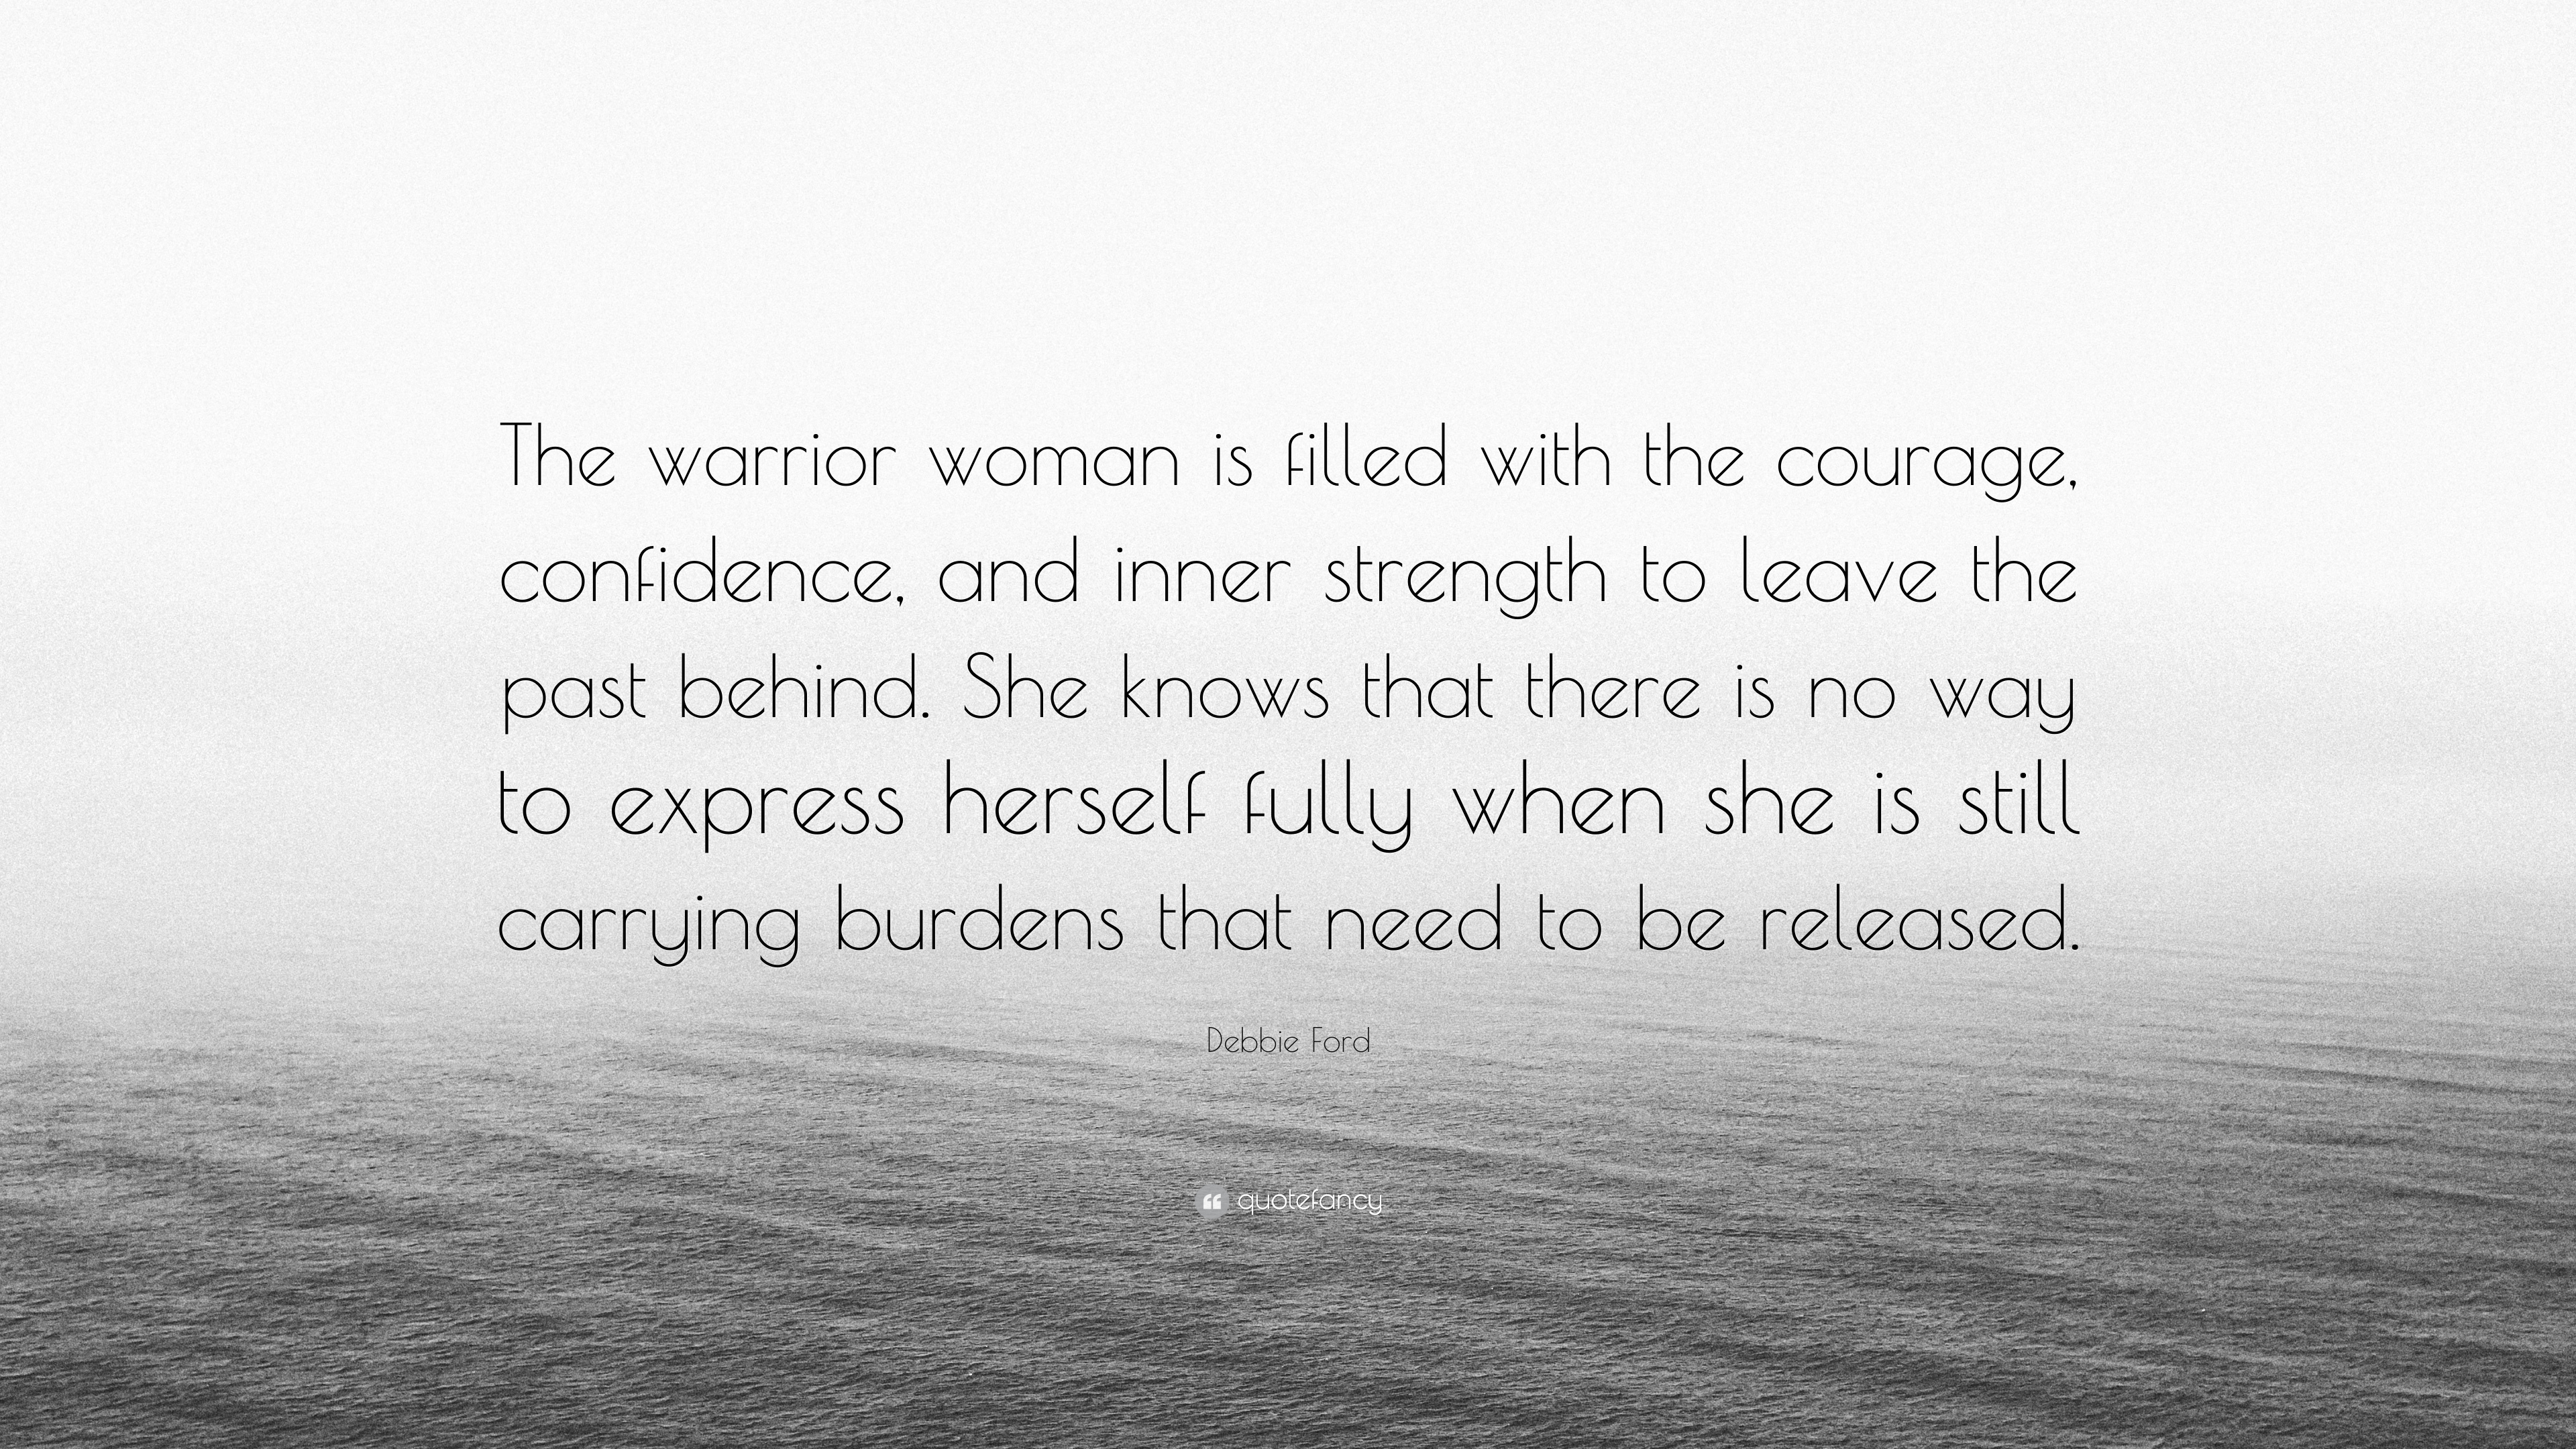 Debbie ford quote the warrior woman is filled with the courage debbie ford quote the warrior woman is filled with the courage confidence altavistaventures Image collections